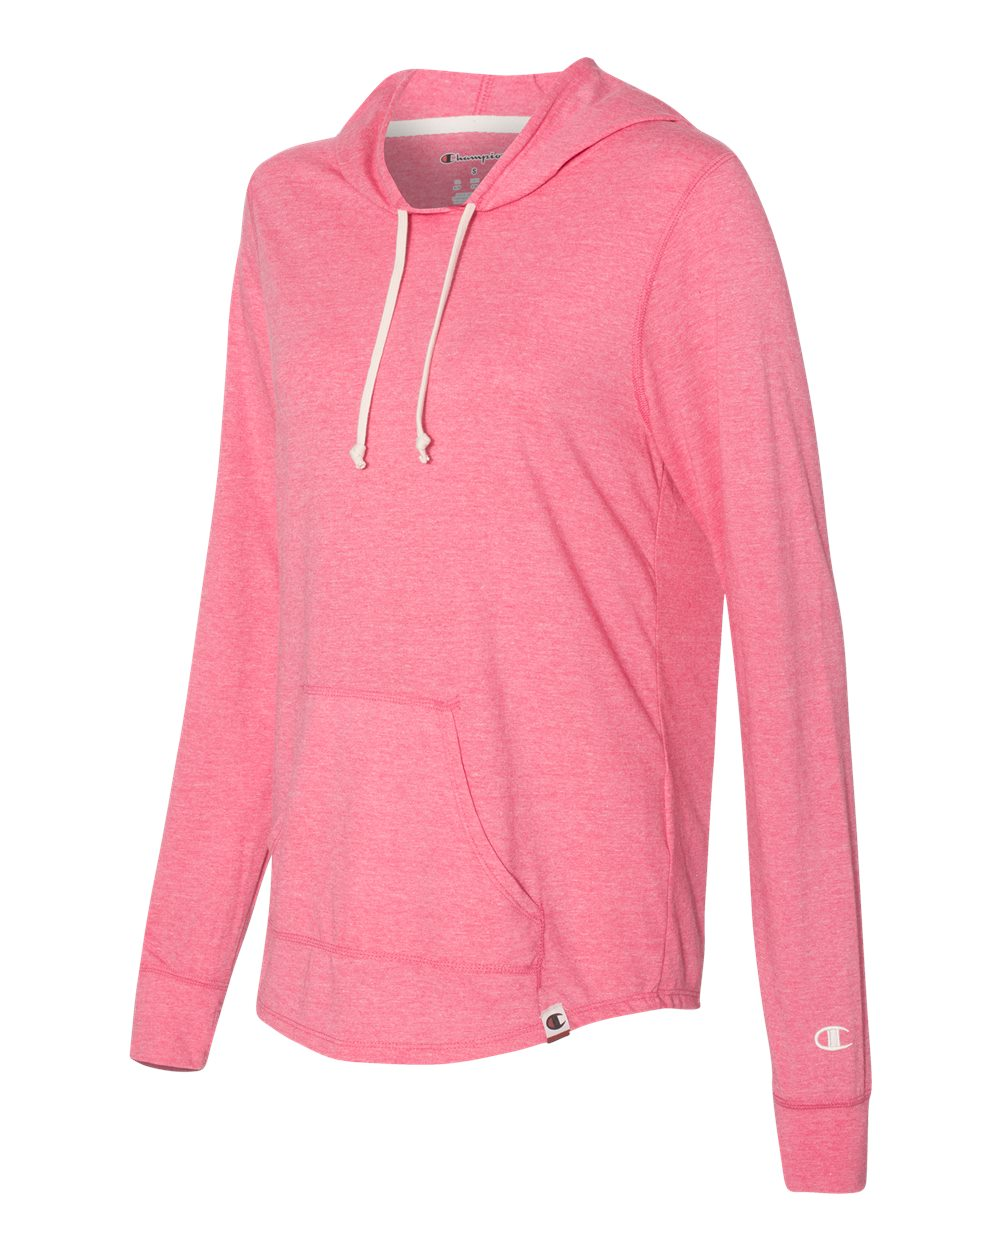 Champion AO150 - Authentic Originals Women's Triblend ...